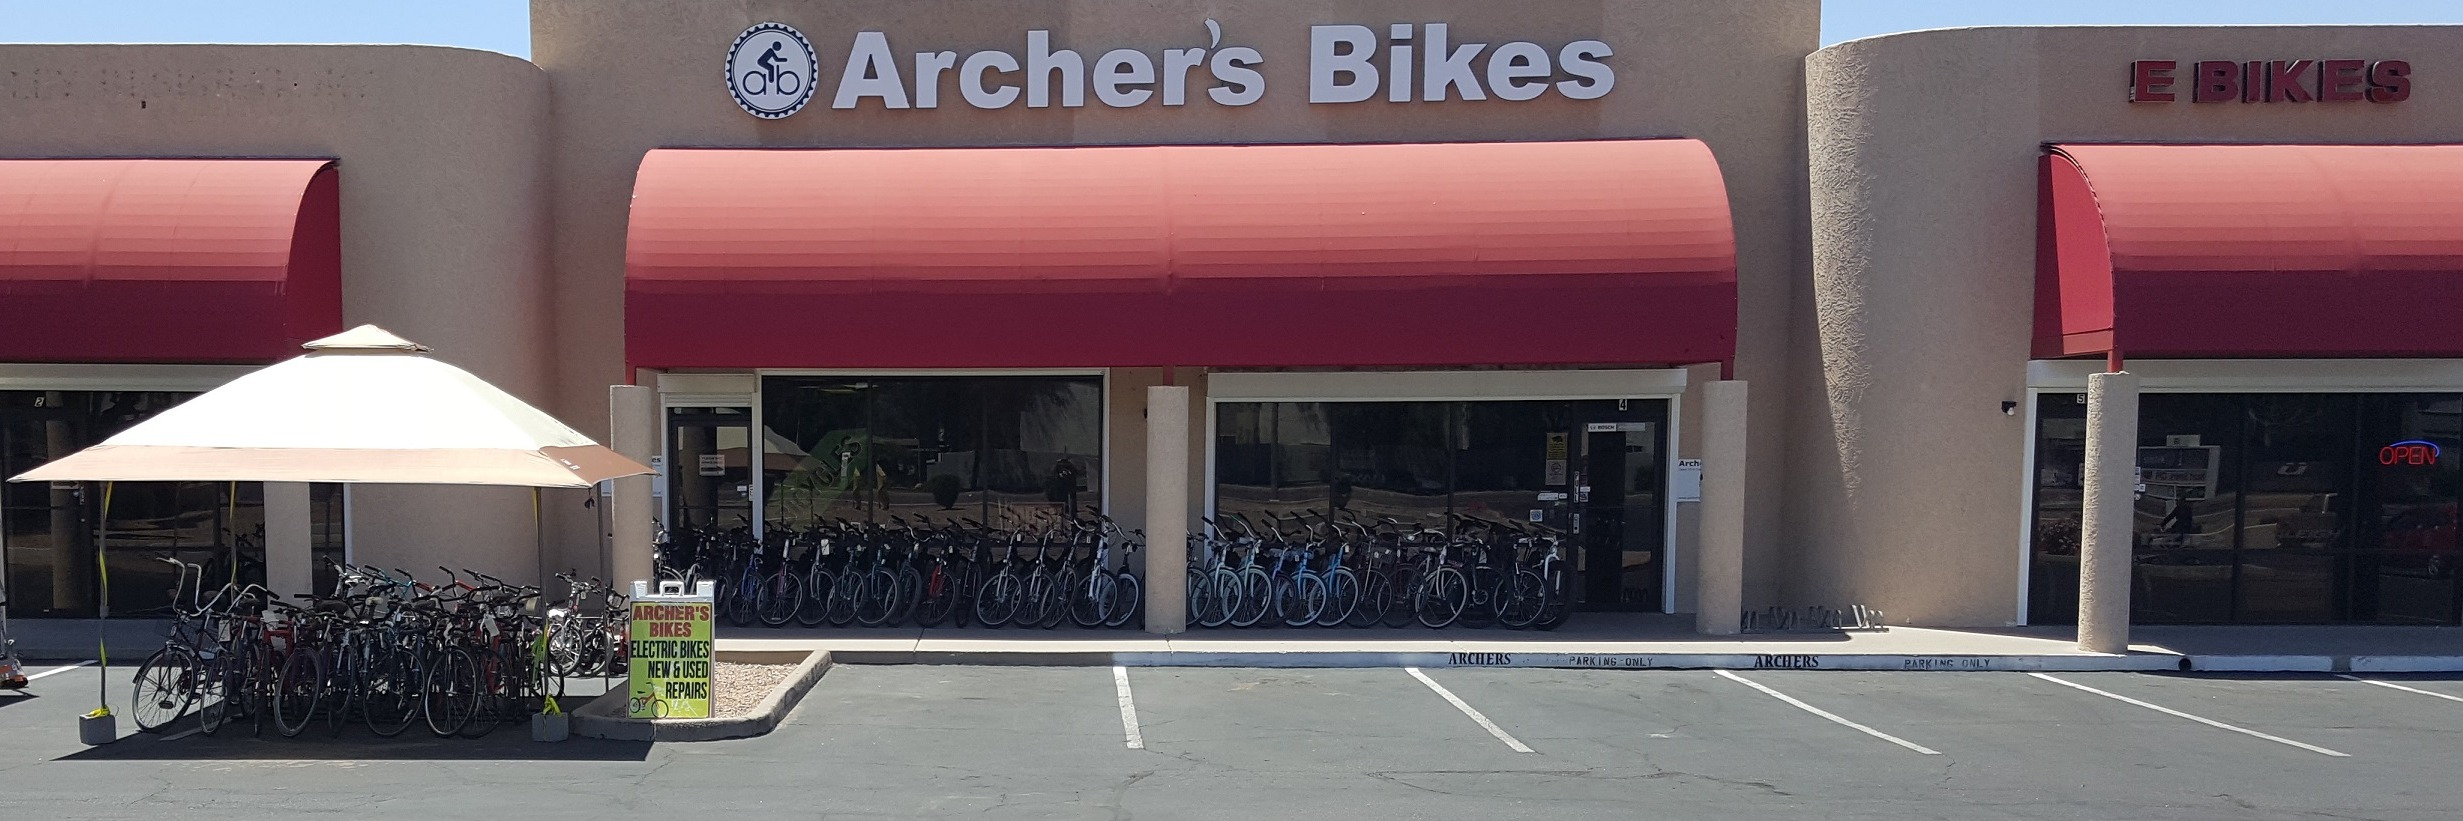 Archer's Bikes - New & Used: Gas bike, E-bike, Bicycles For Sale in Mesa, AZ.